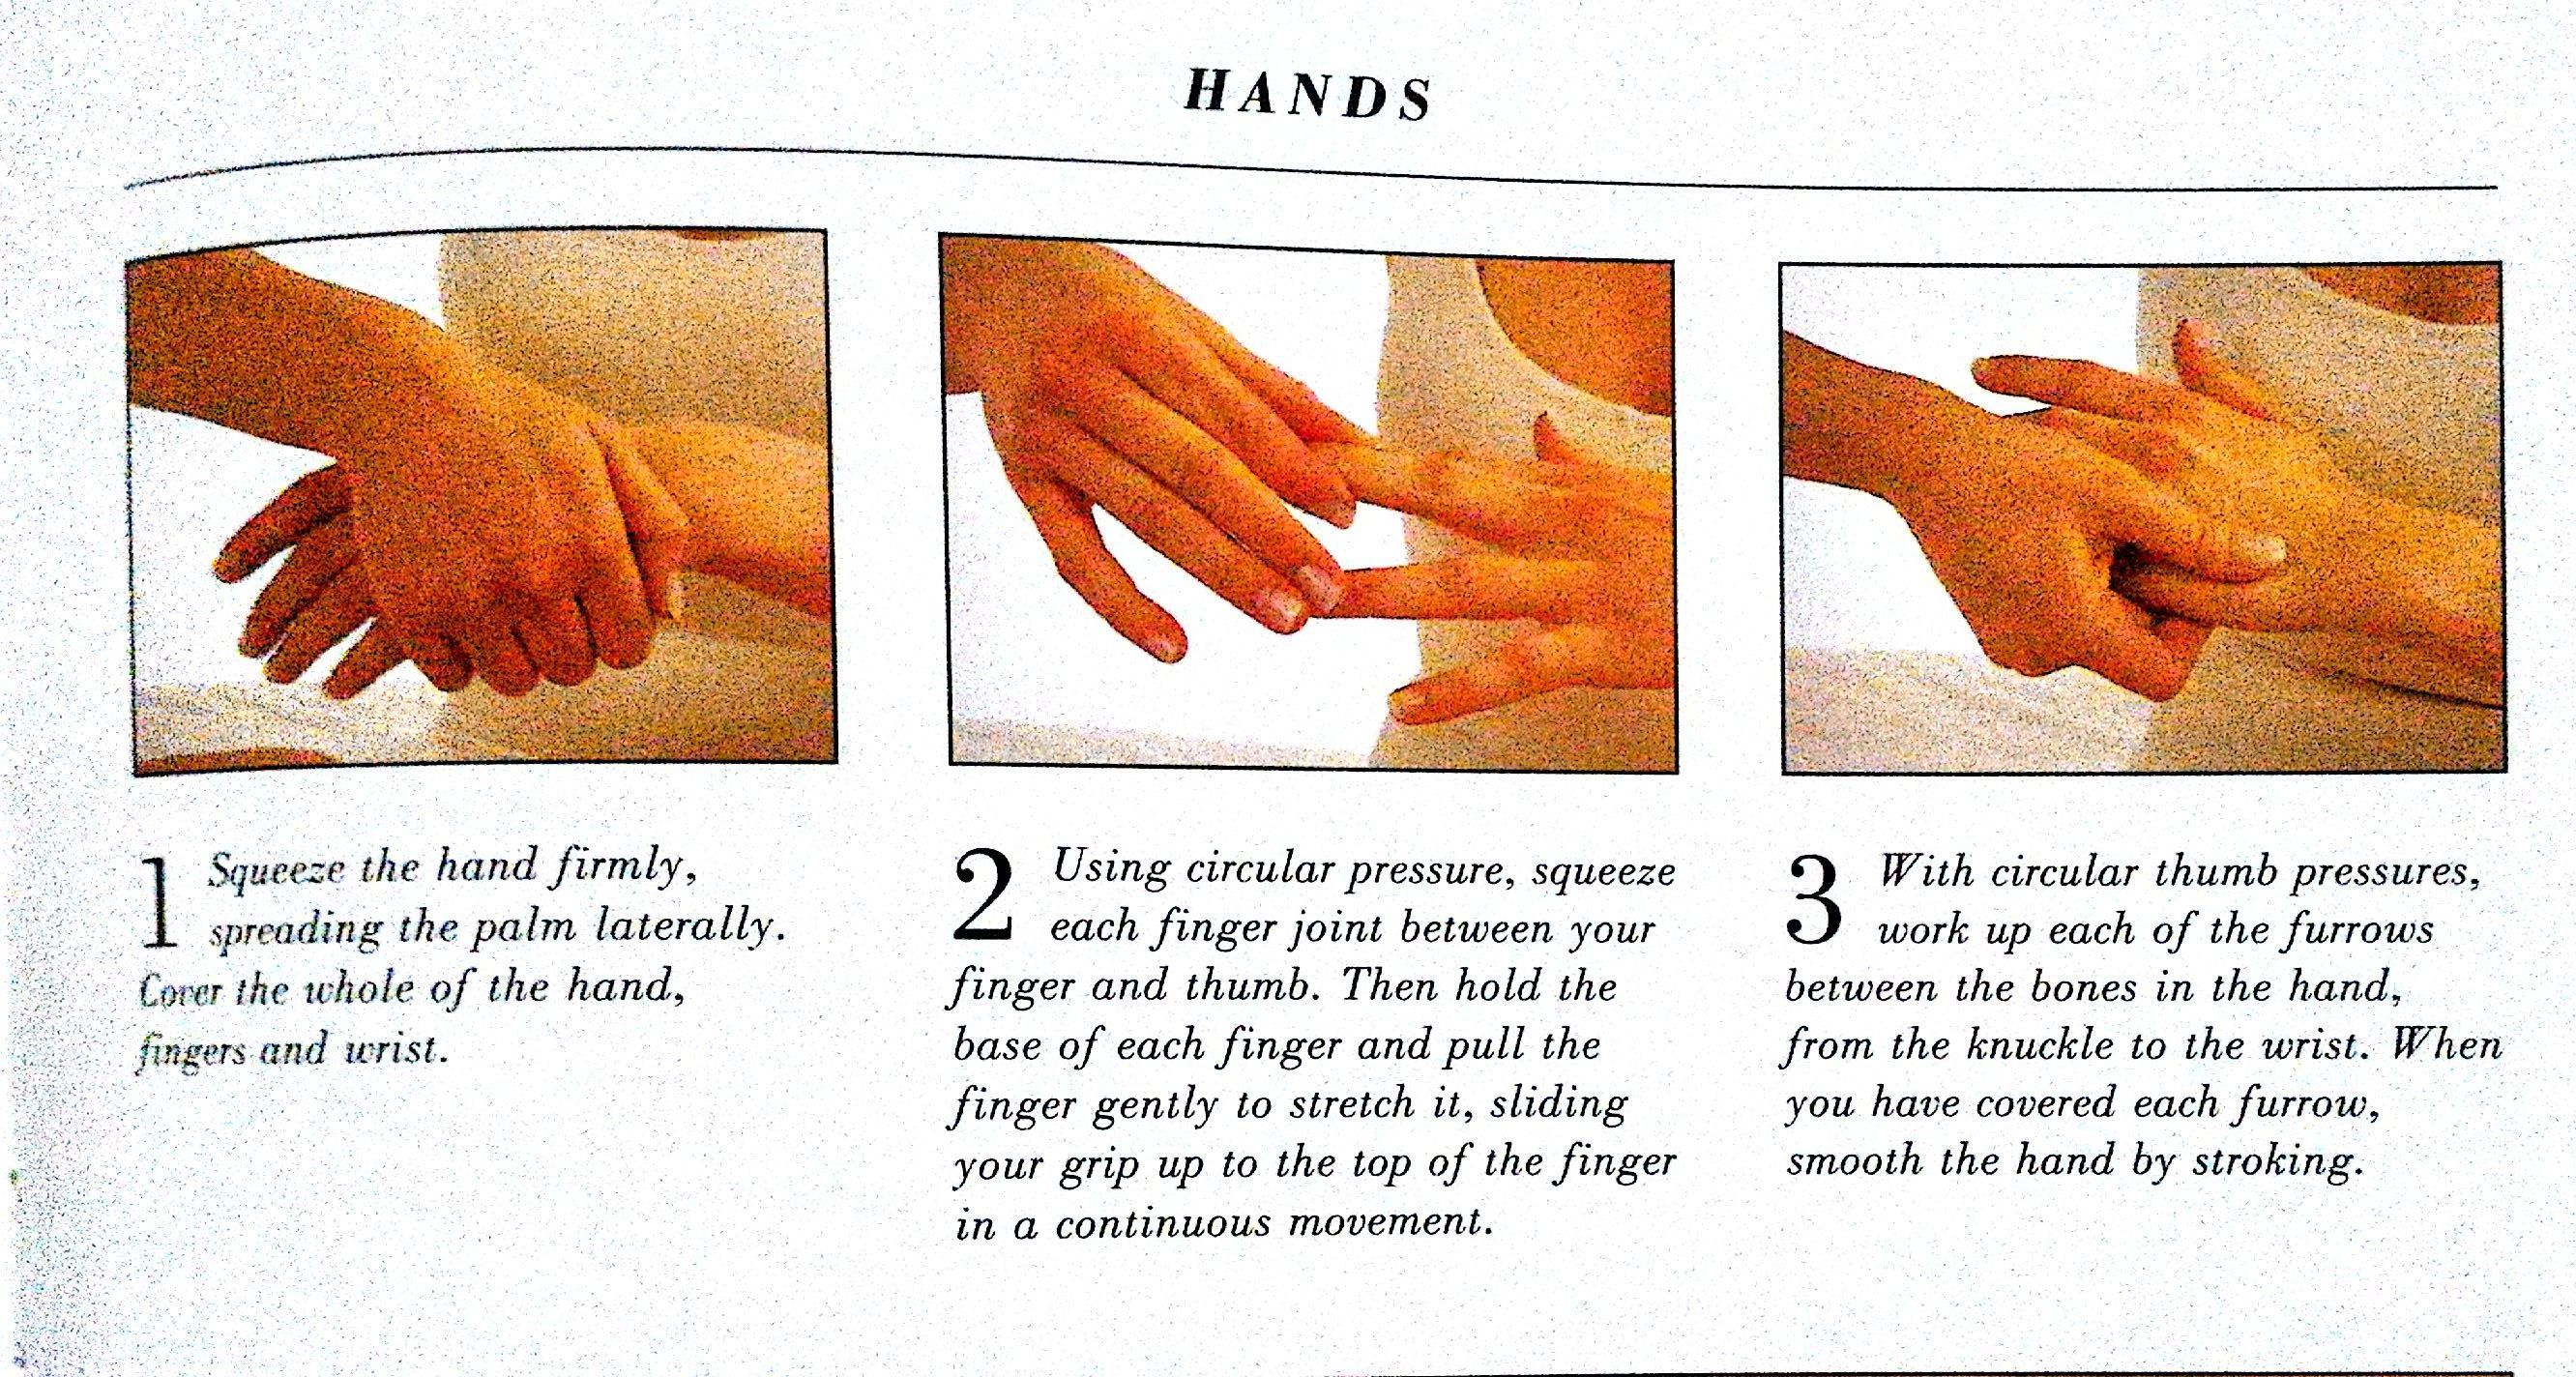 Traditional Chinese Massage - The Secrets Behind Traditional Chinese Medicine 6-hands-massage